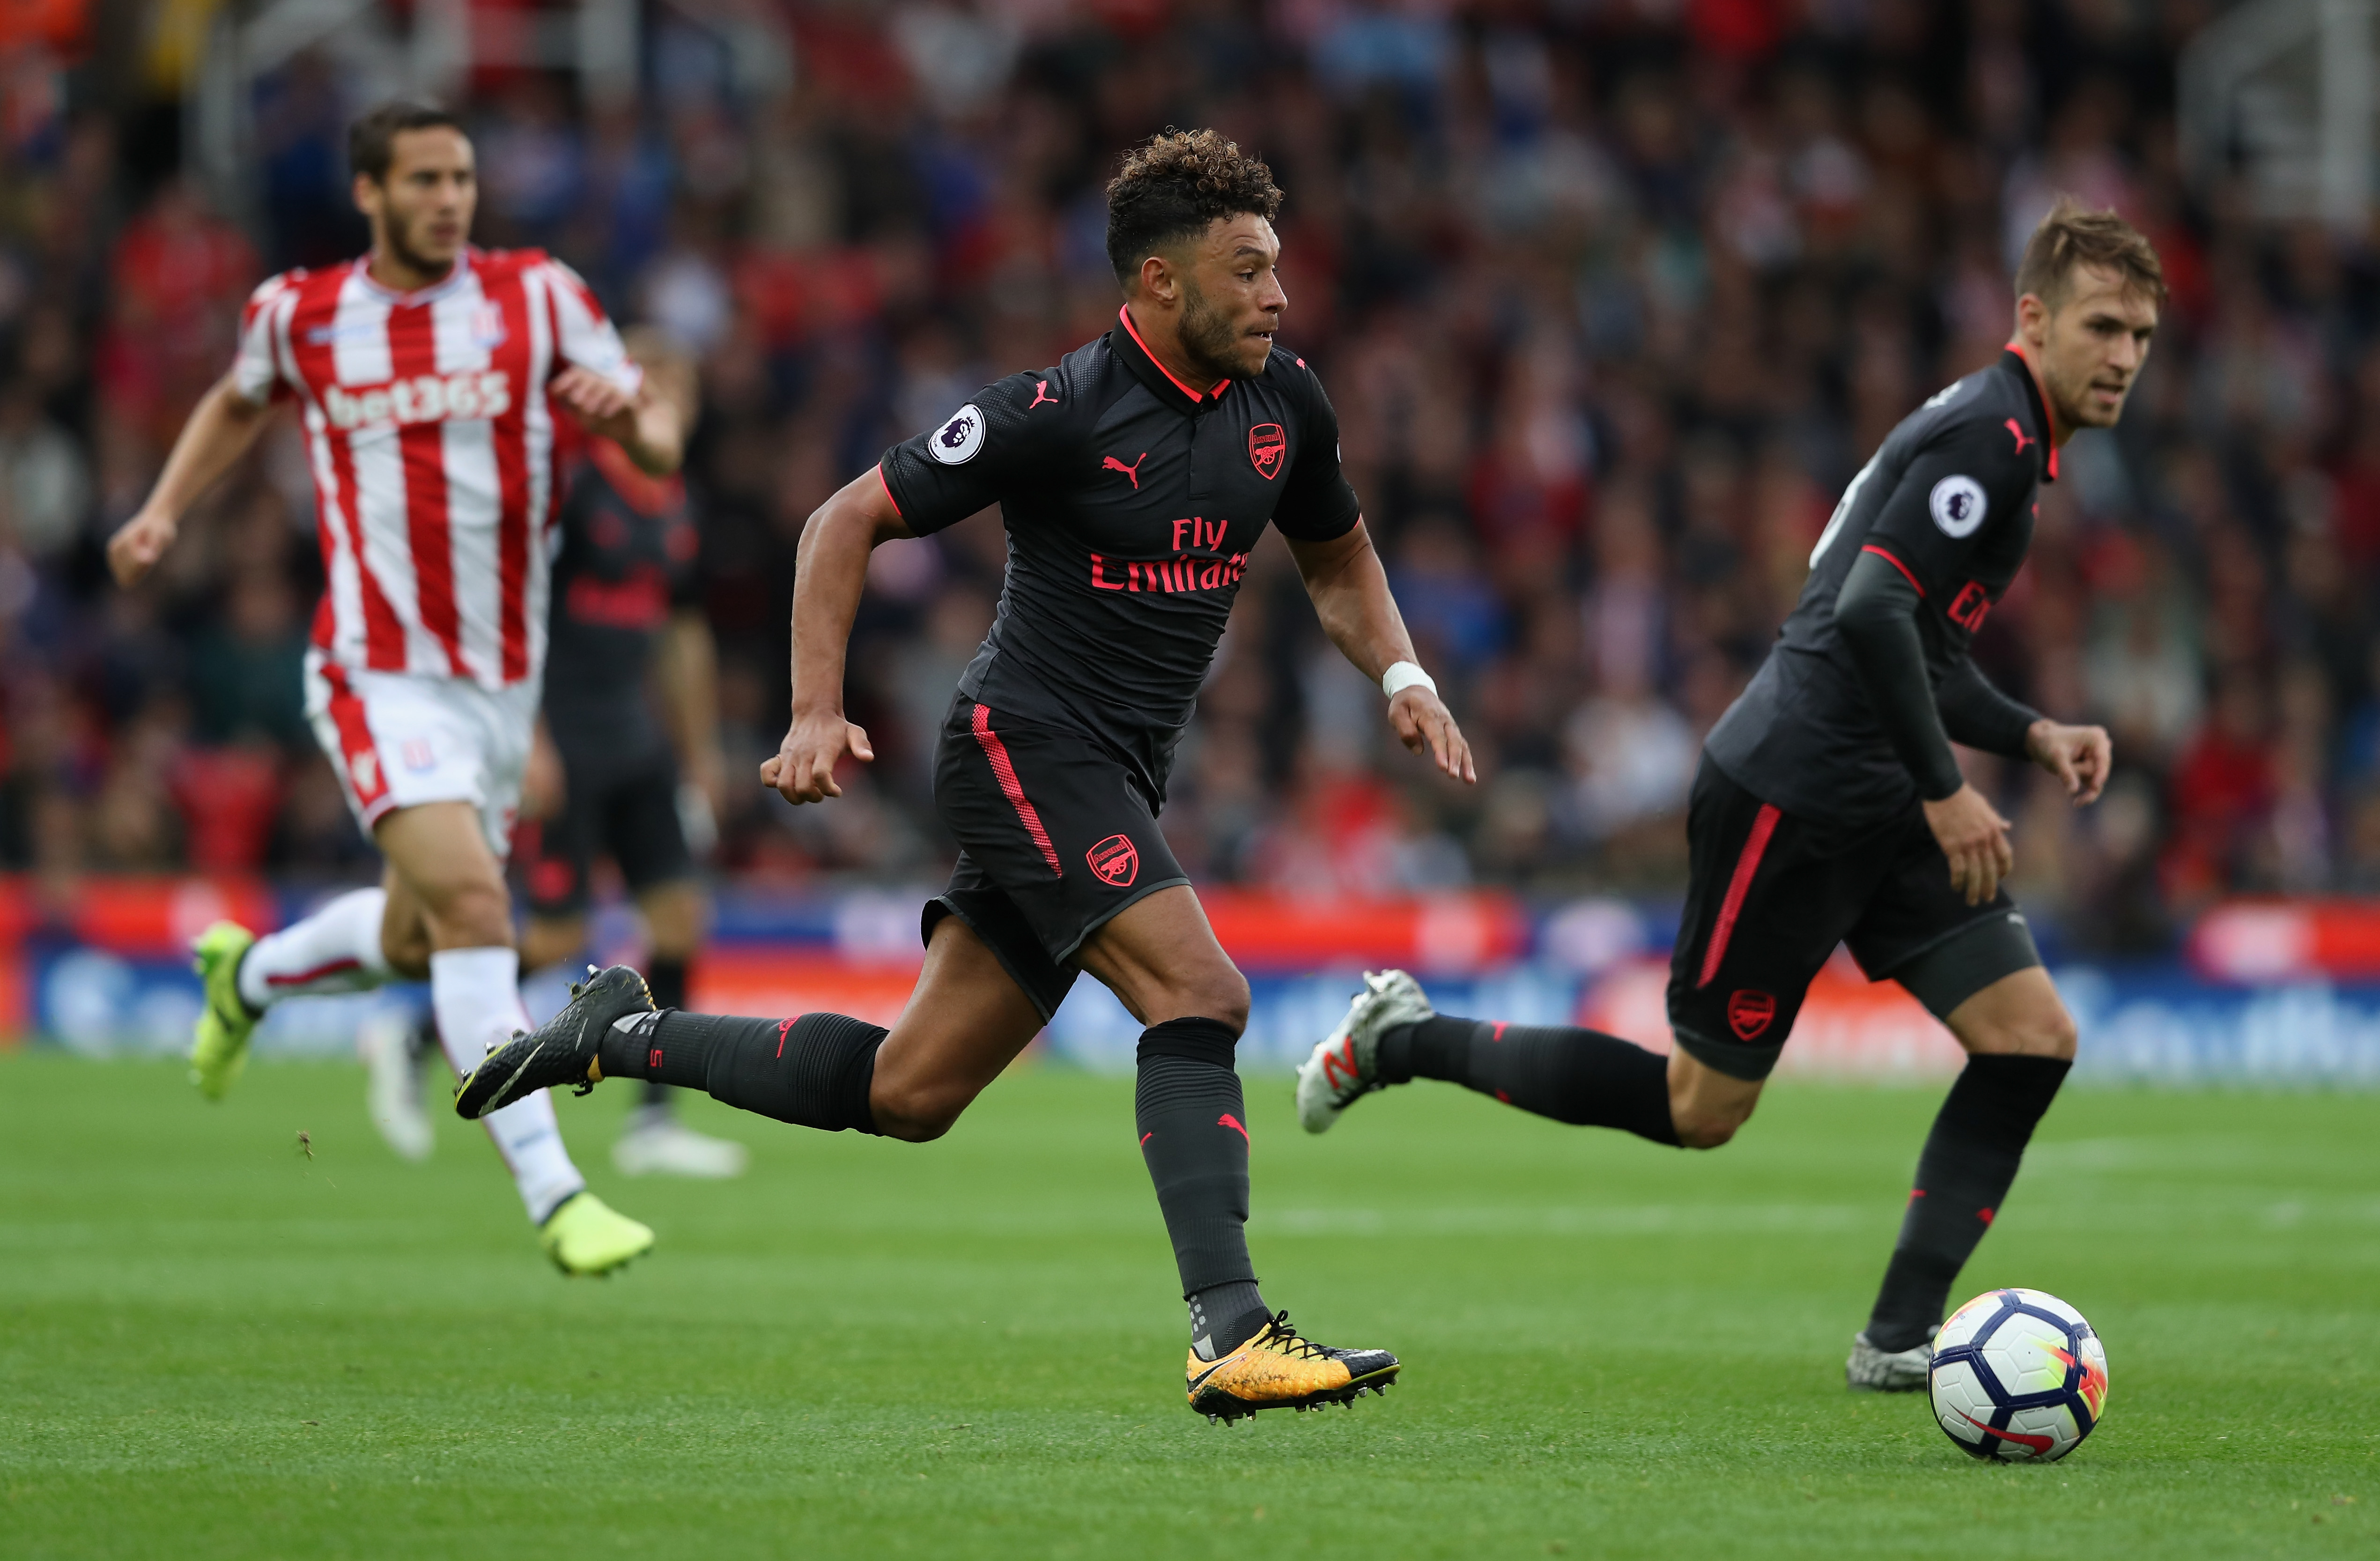 Liverpool signs Oxlade-Chamberlain from Arsenal for $45m